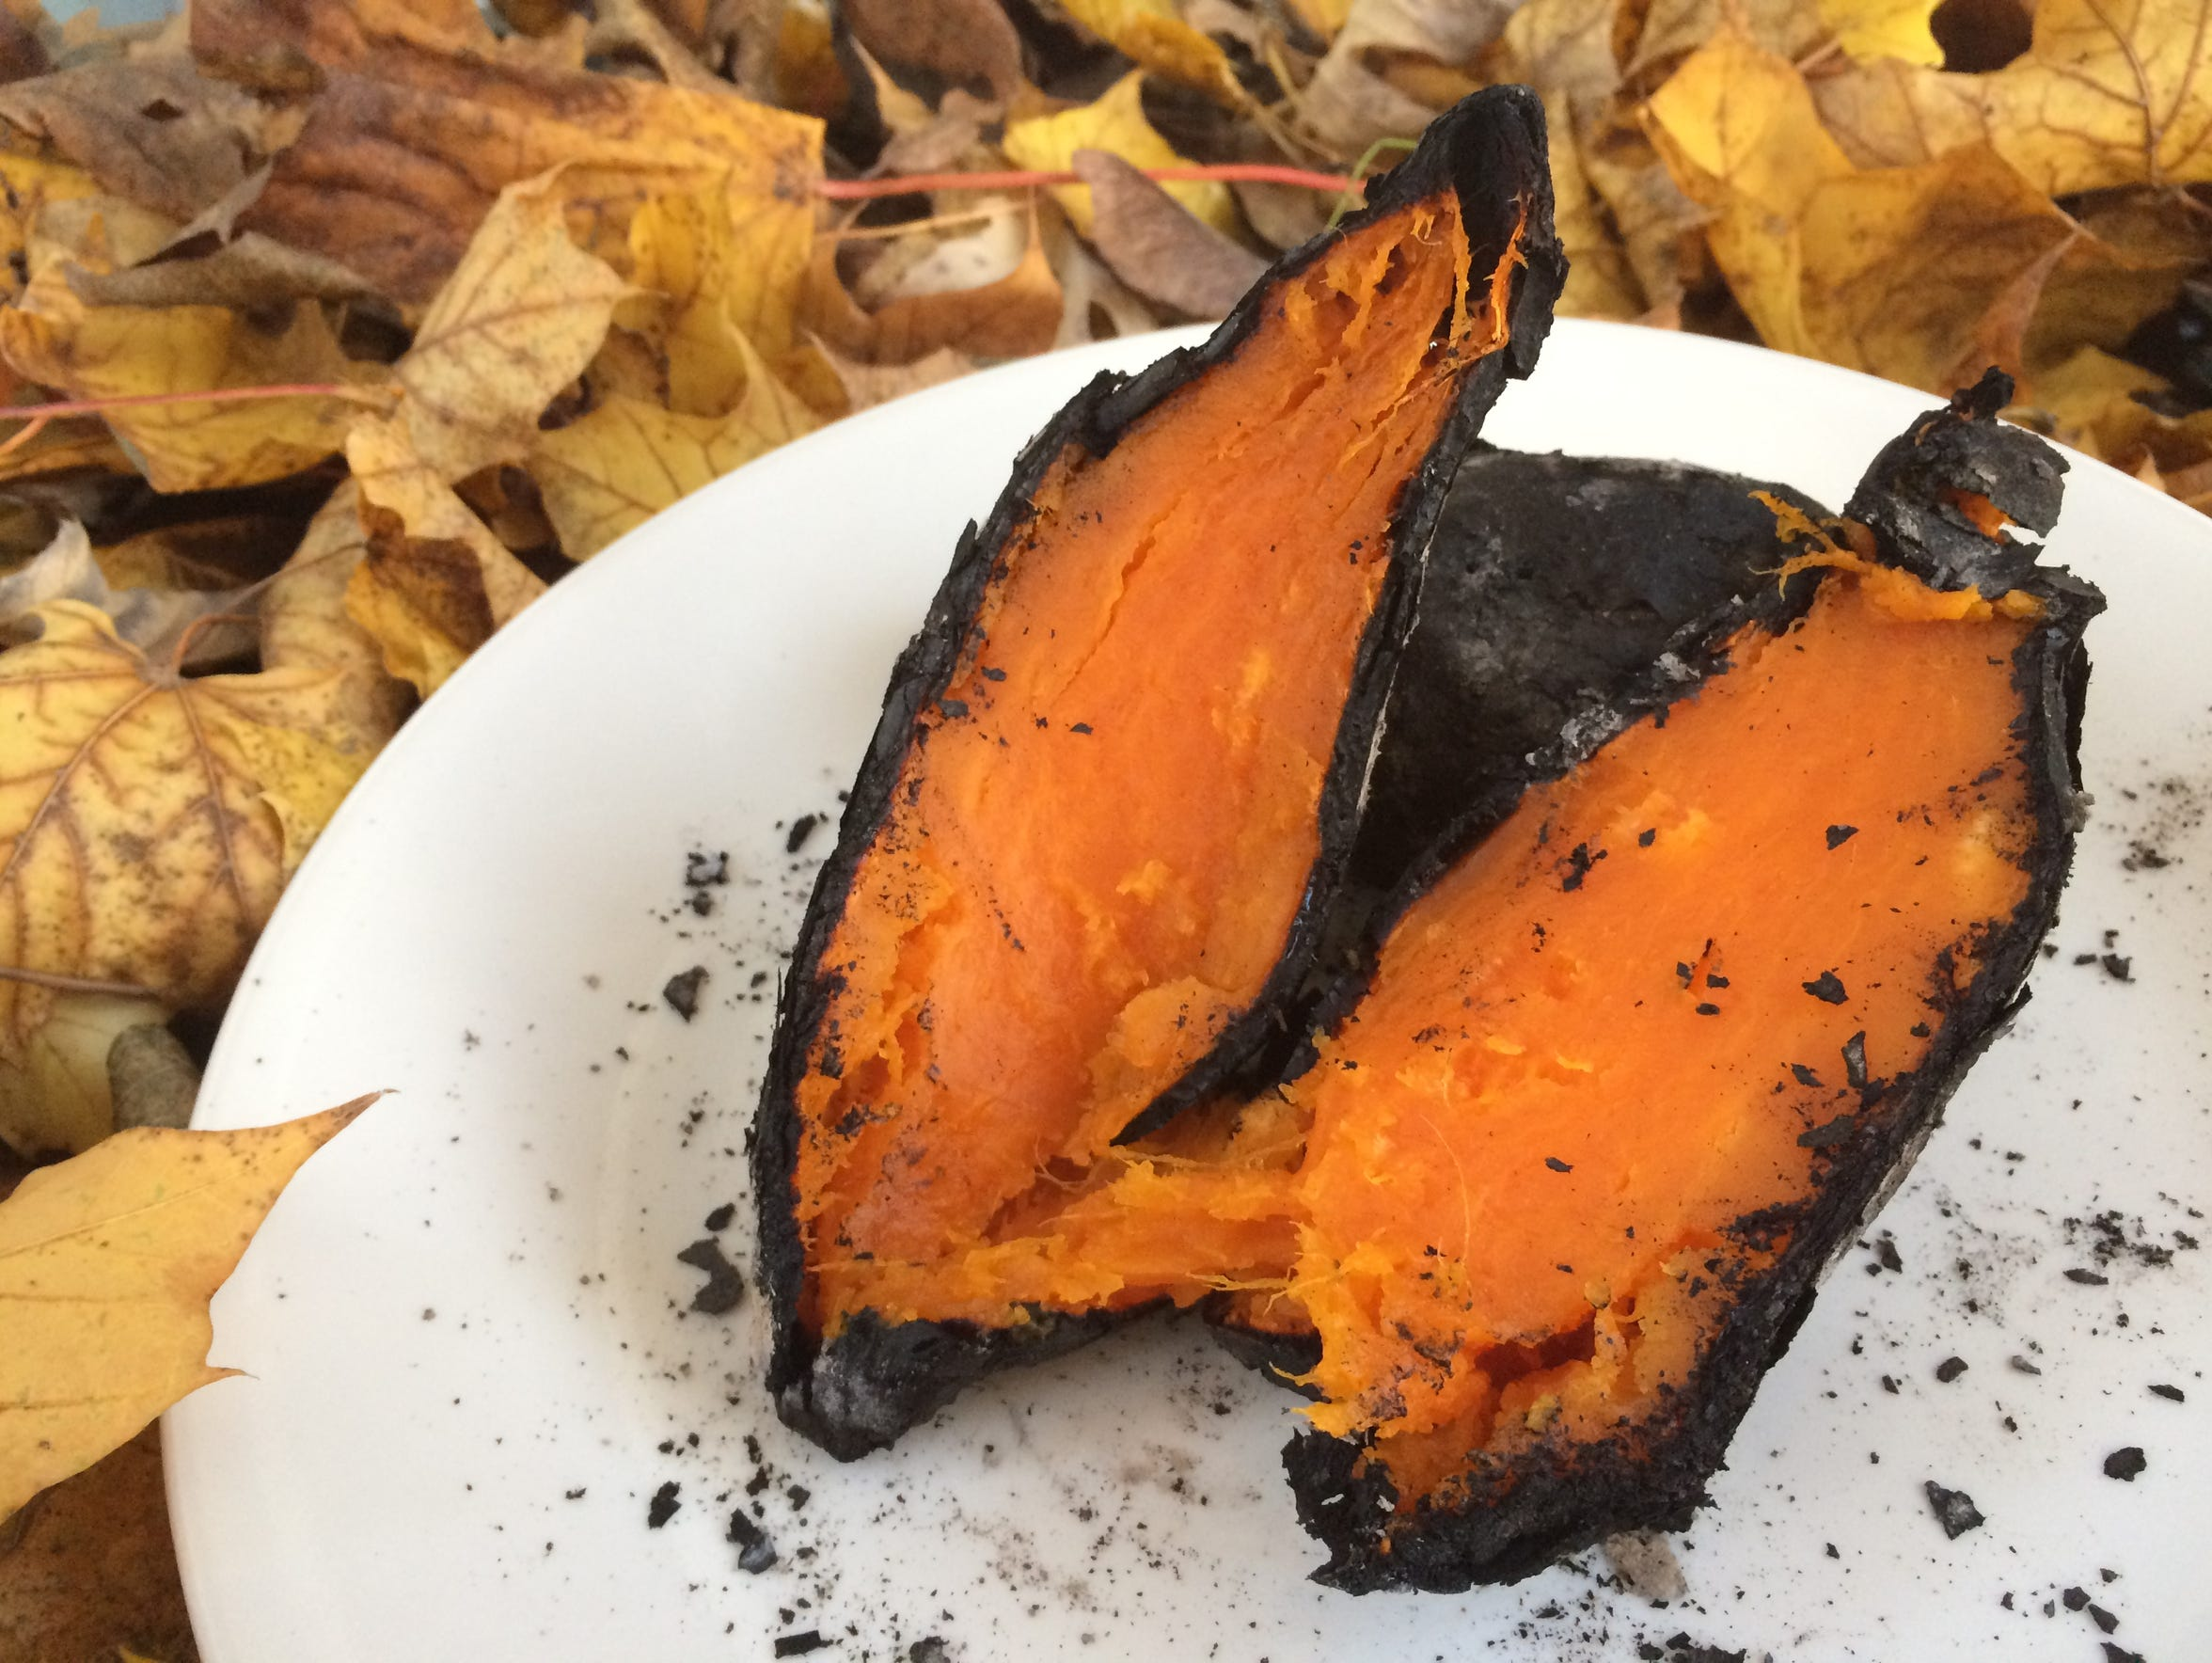 Some of the sweet potato is lost to the charring process.